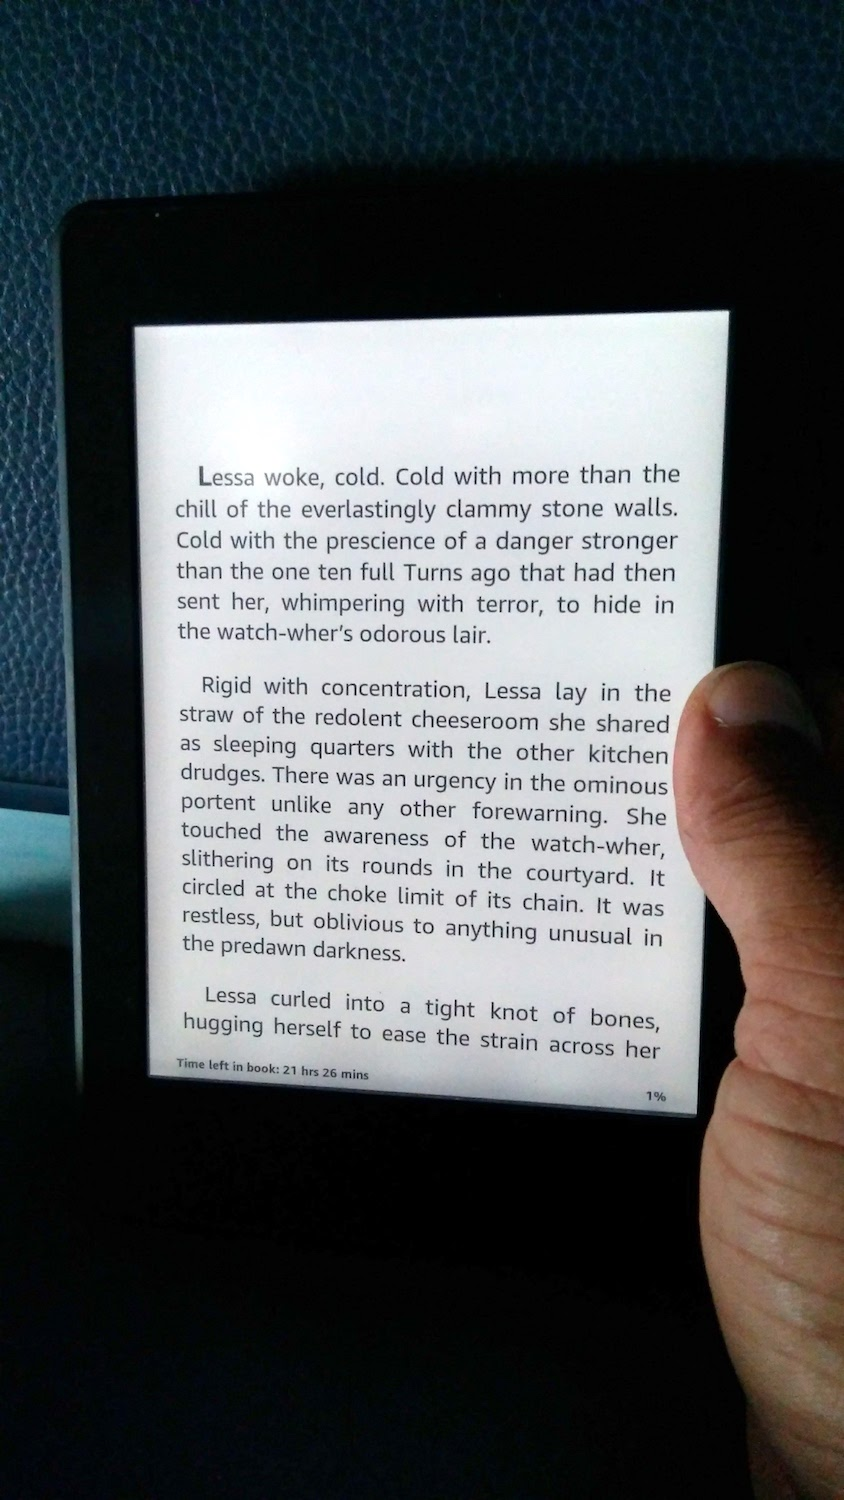 """The Kindle on an Indian Railways journey is the perfect """"timepass"""". Kindle reckons this book will last me 21 hours, which is perfect for a Delhi - Mumbai train"""